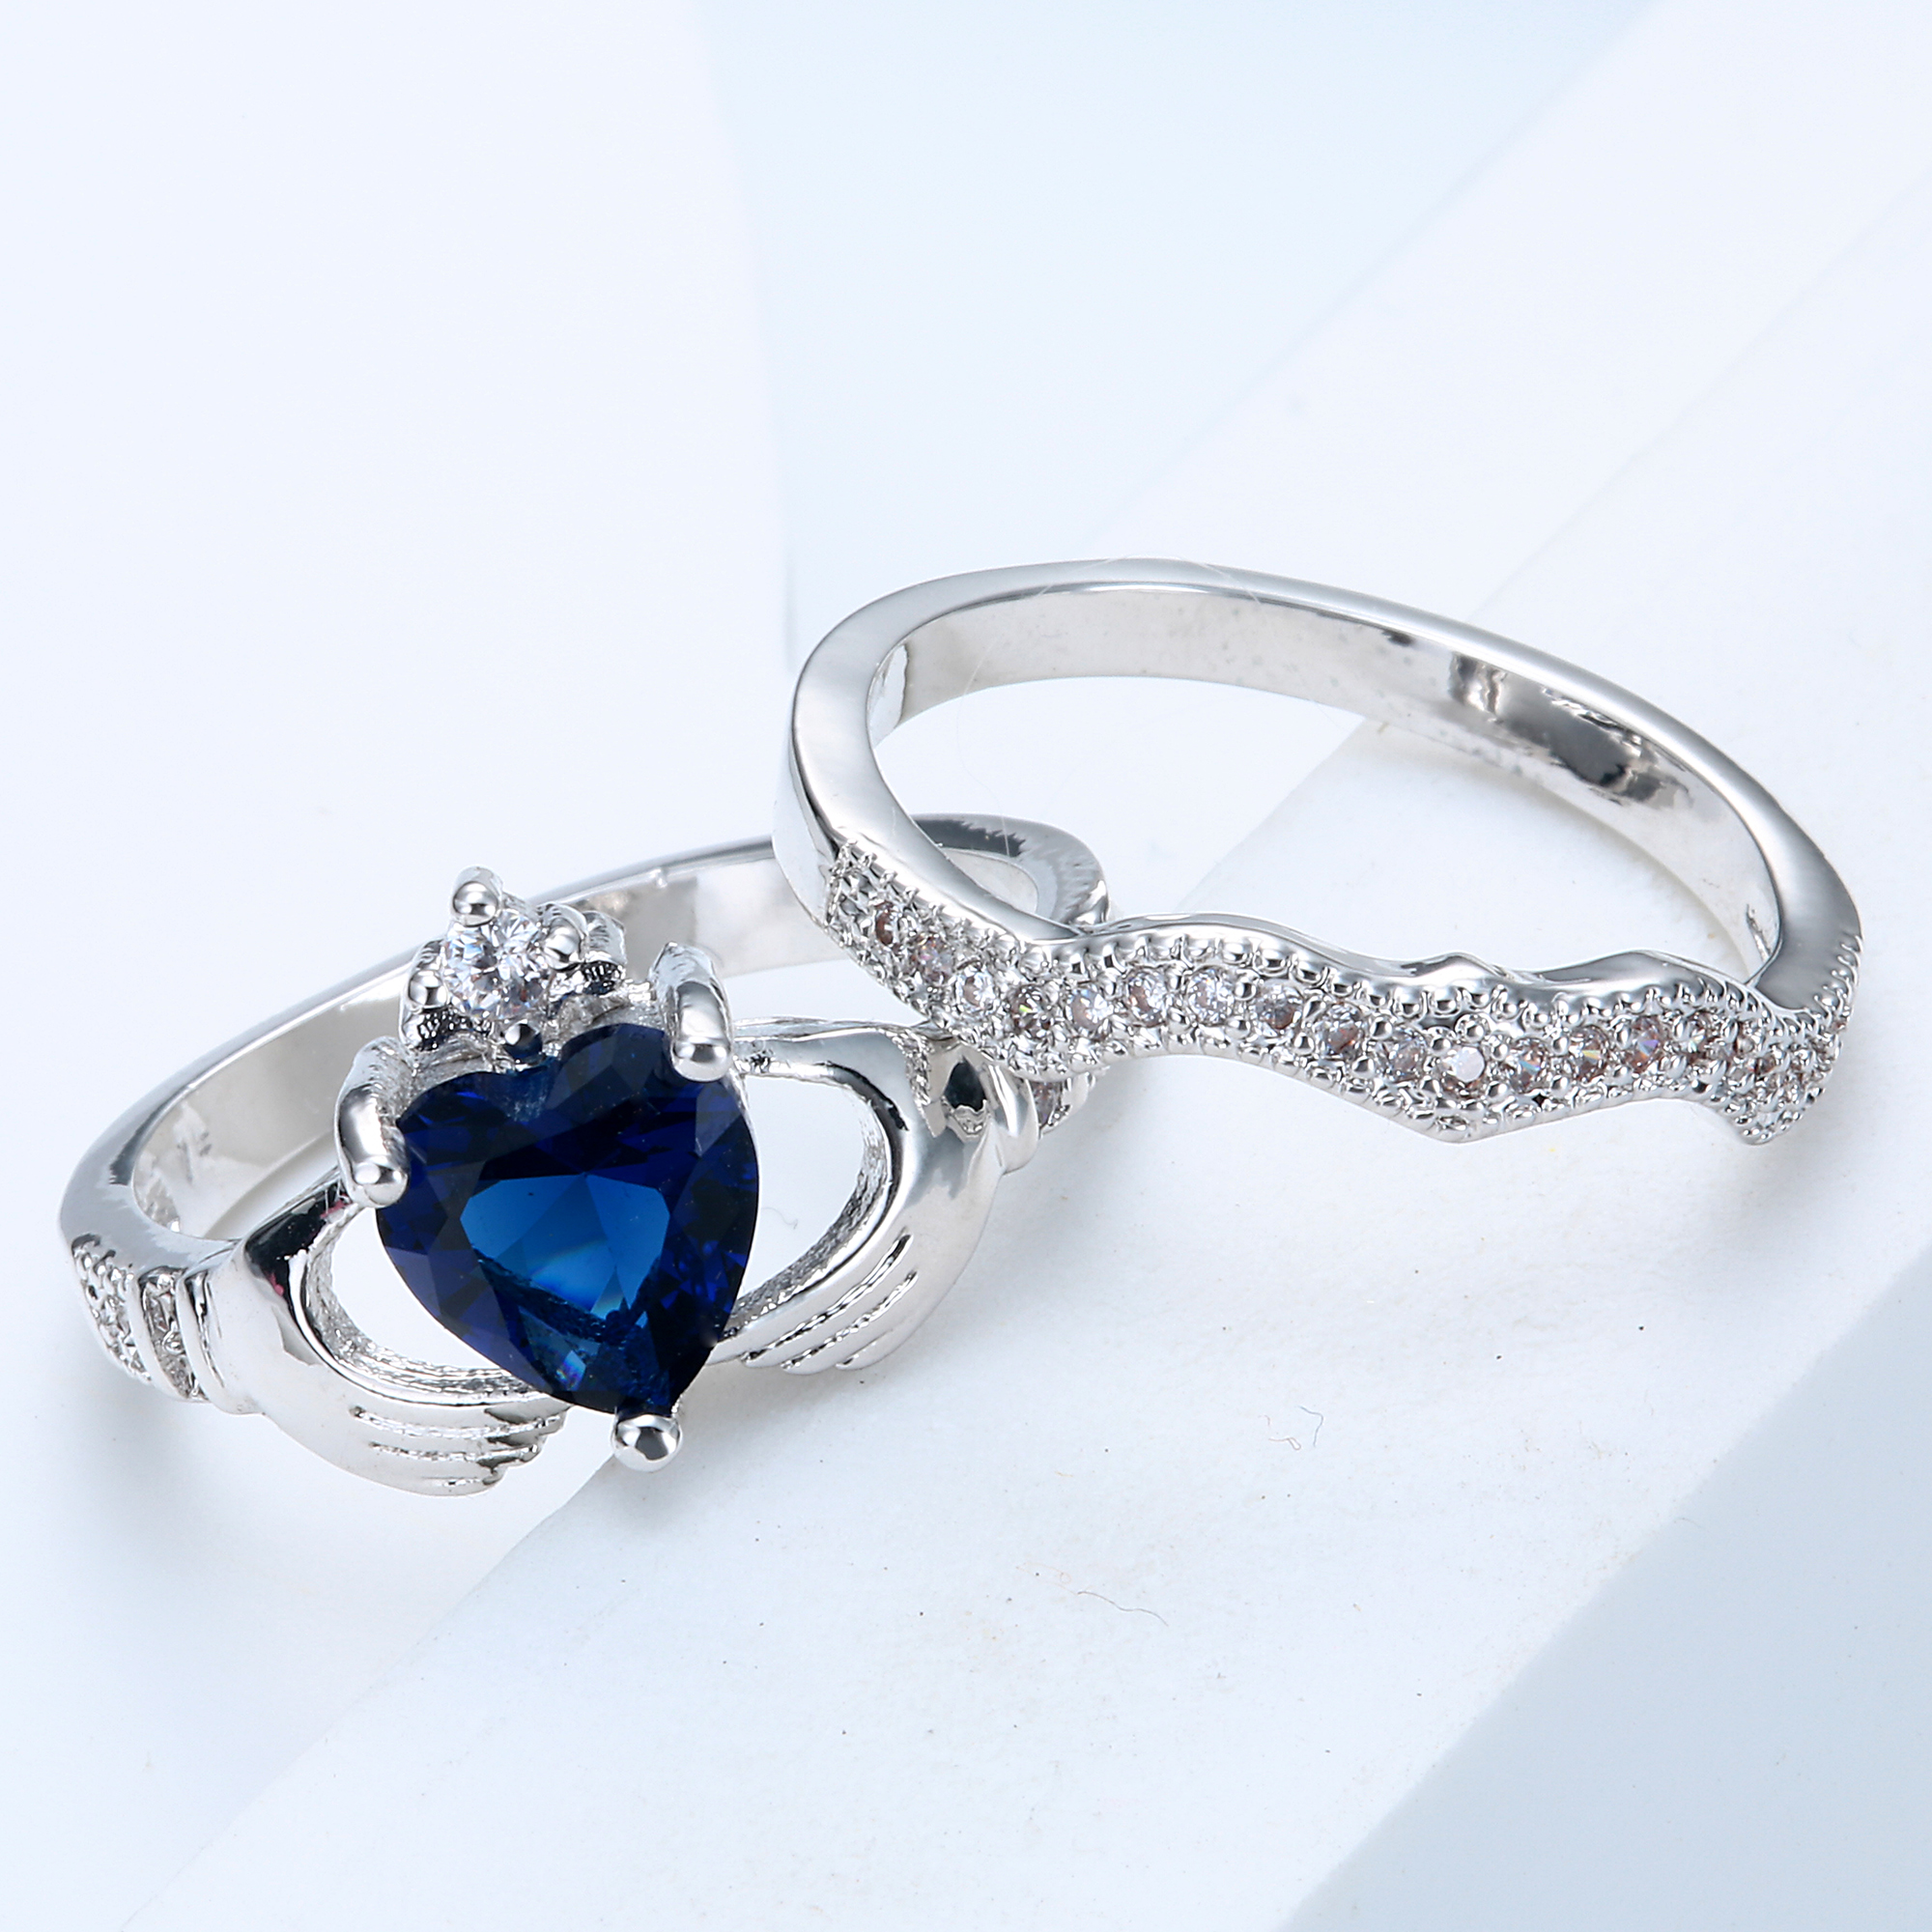 gemstone main unique glamour rings engagement colored gallery royal colorful blue stones weddings